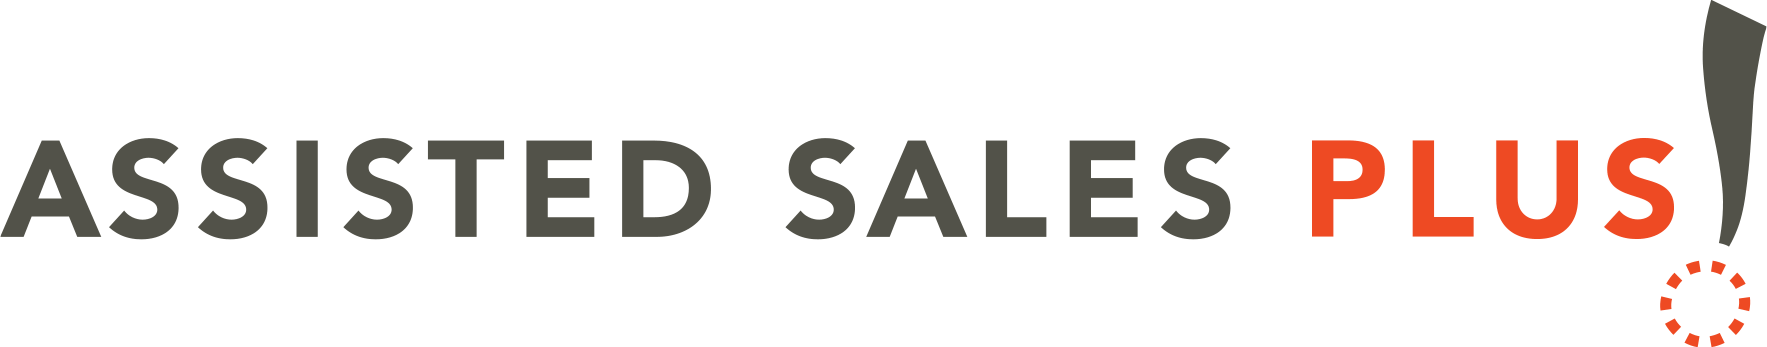 Assisted Sales Plus